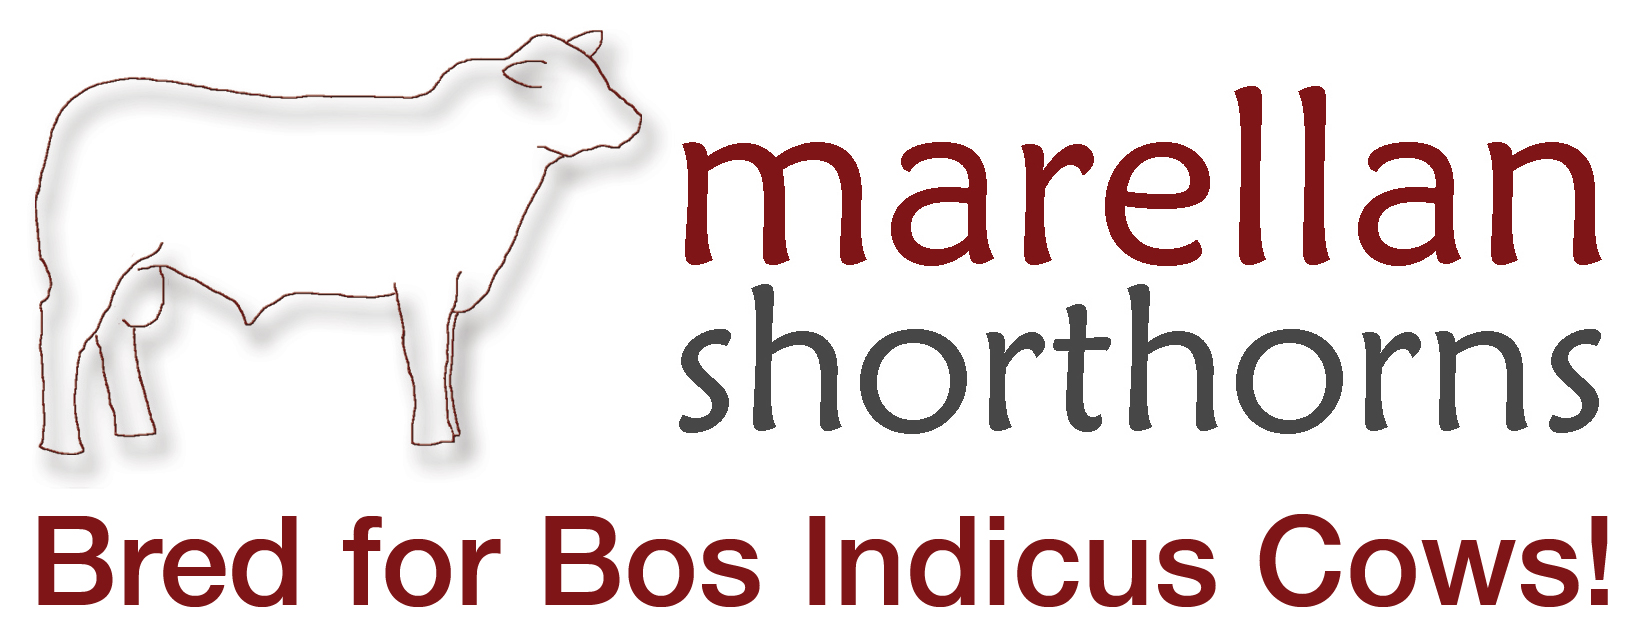 Marellan Shorthorns – Bred for Bos Indicus Cows Bull Sale